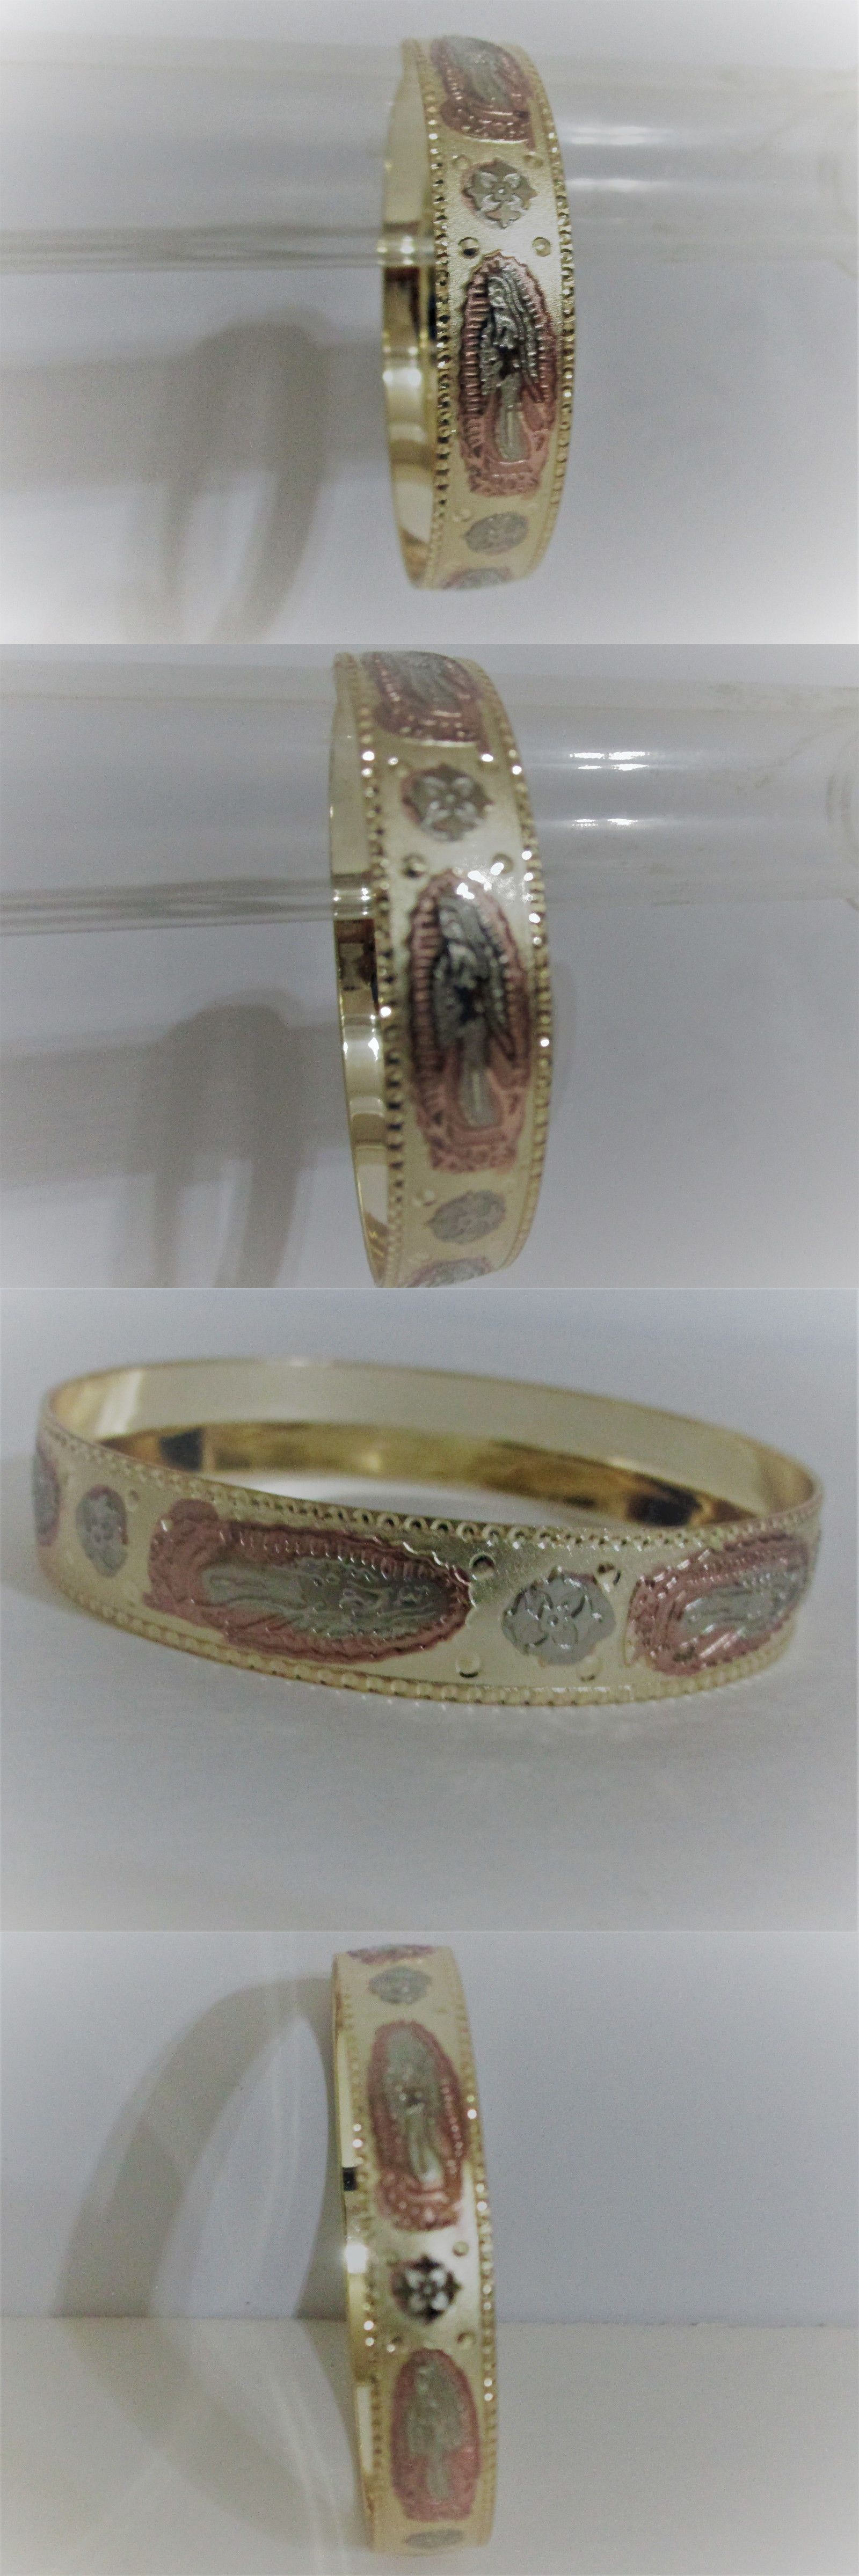 Mexican virgin mary guadalupe unique gold filled tone